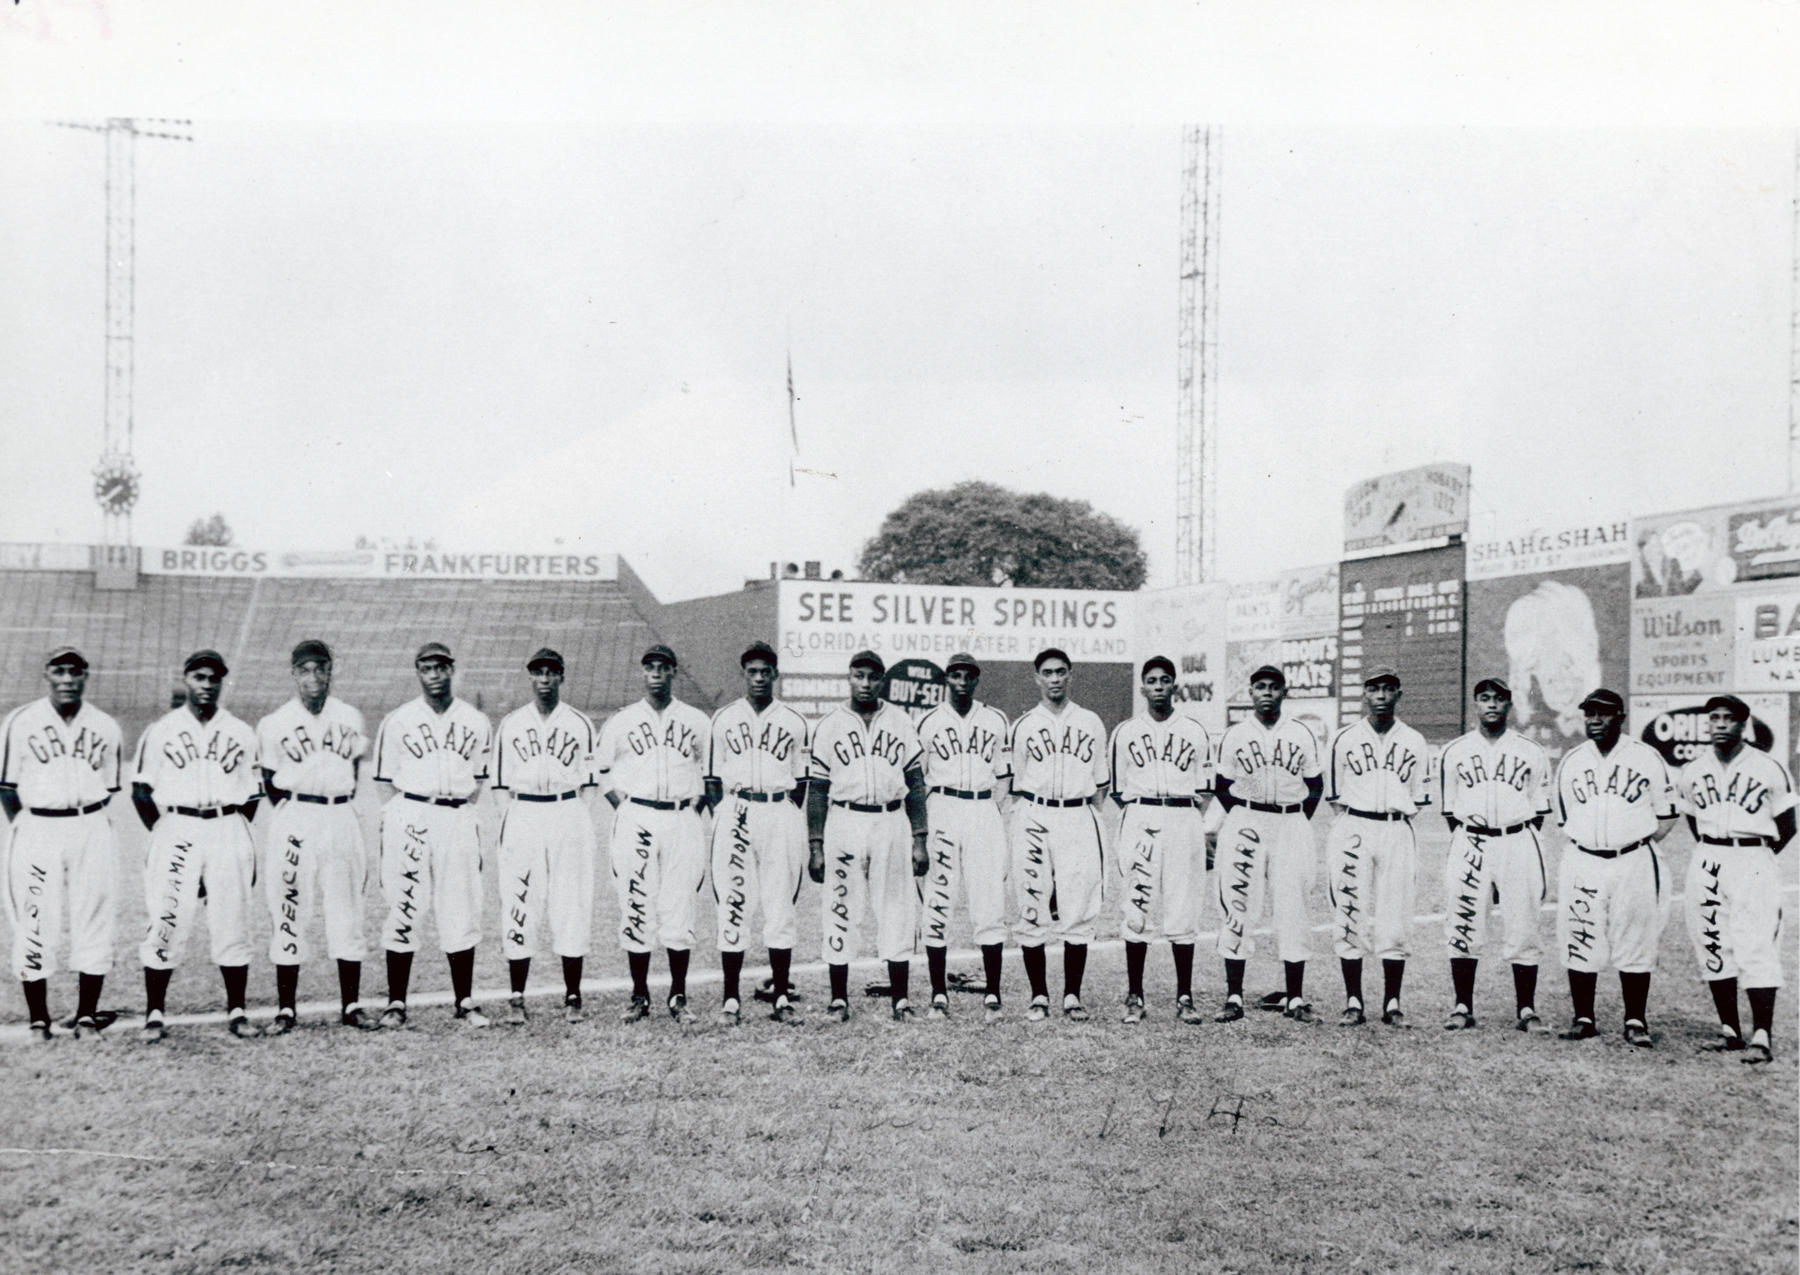 The 1943 Homestead Grays. BL-3284-72 (National Baseball Hall of Fame Library)